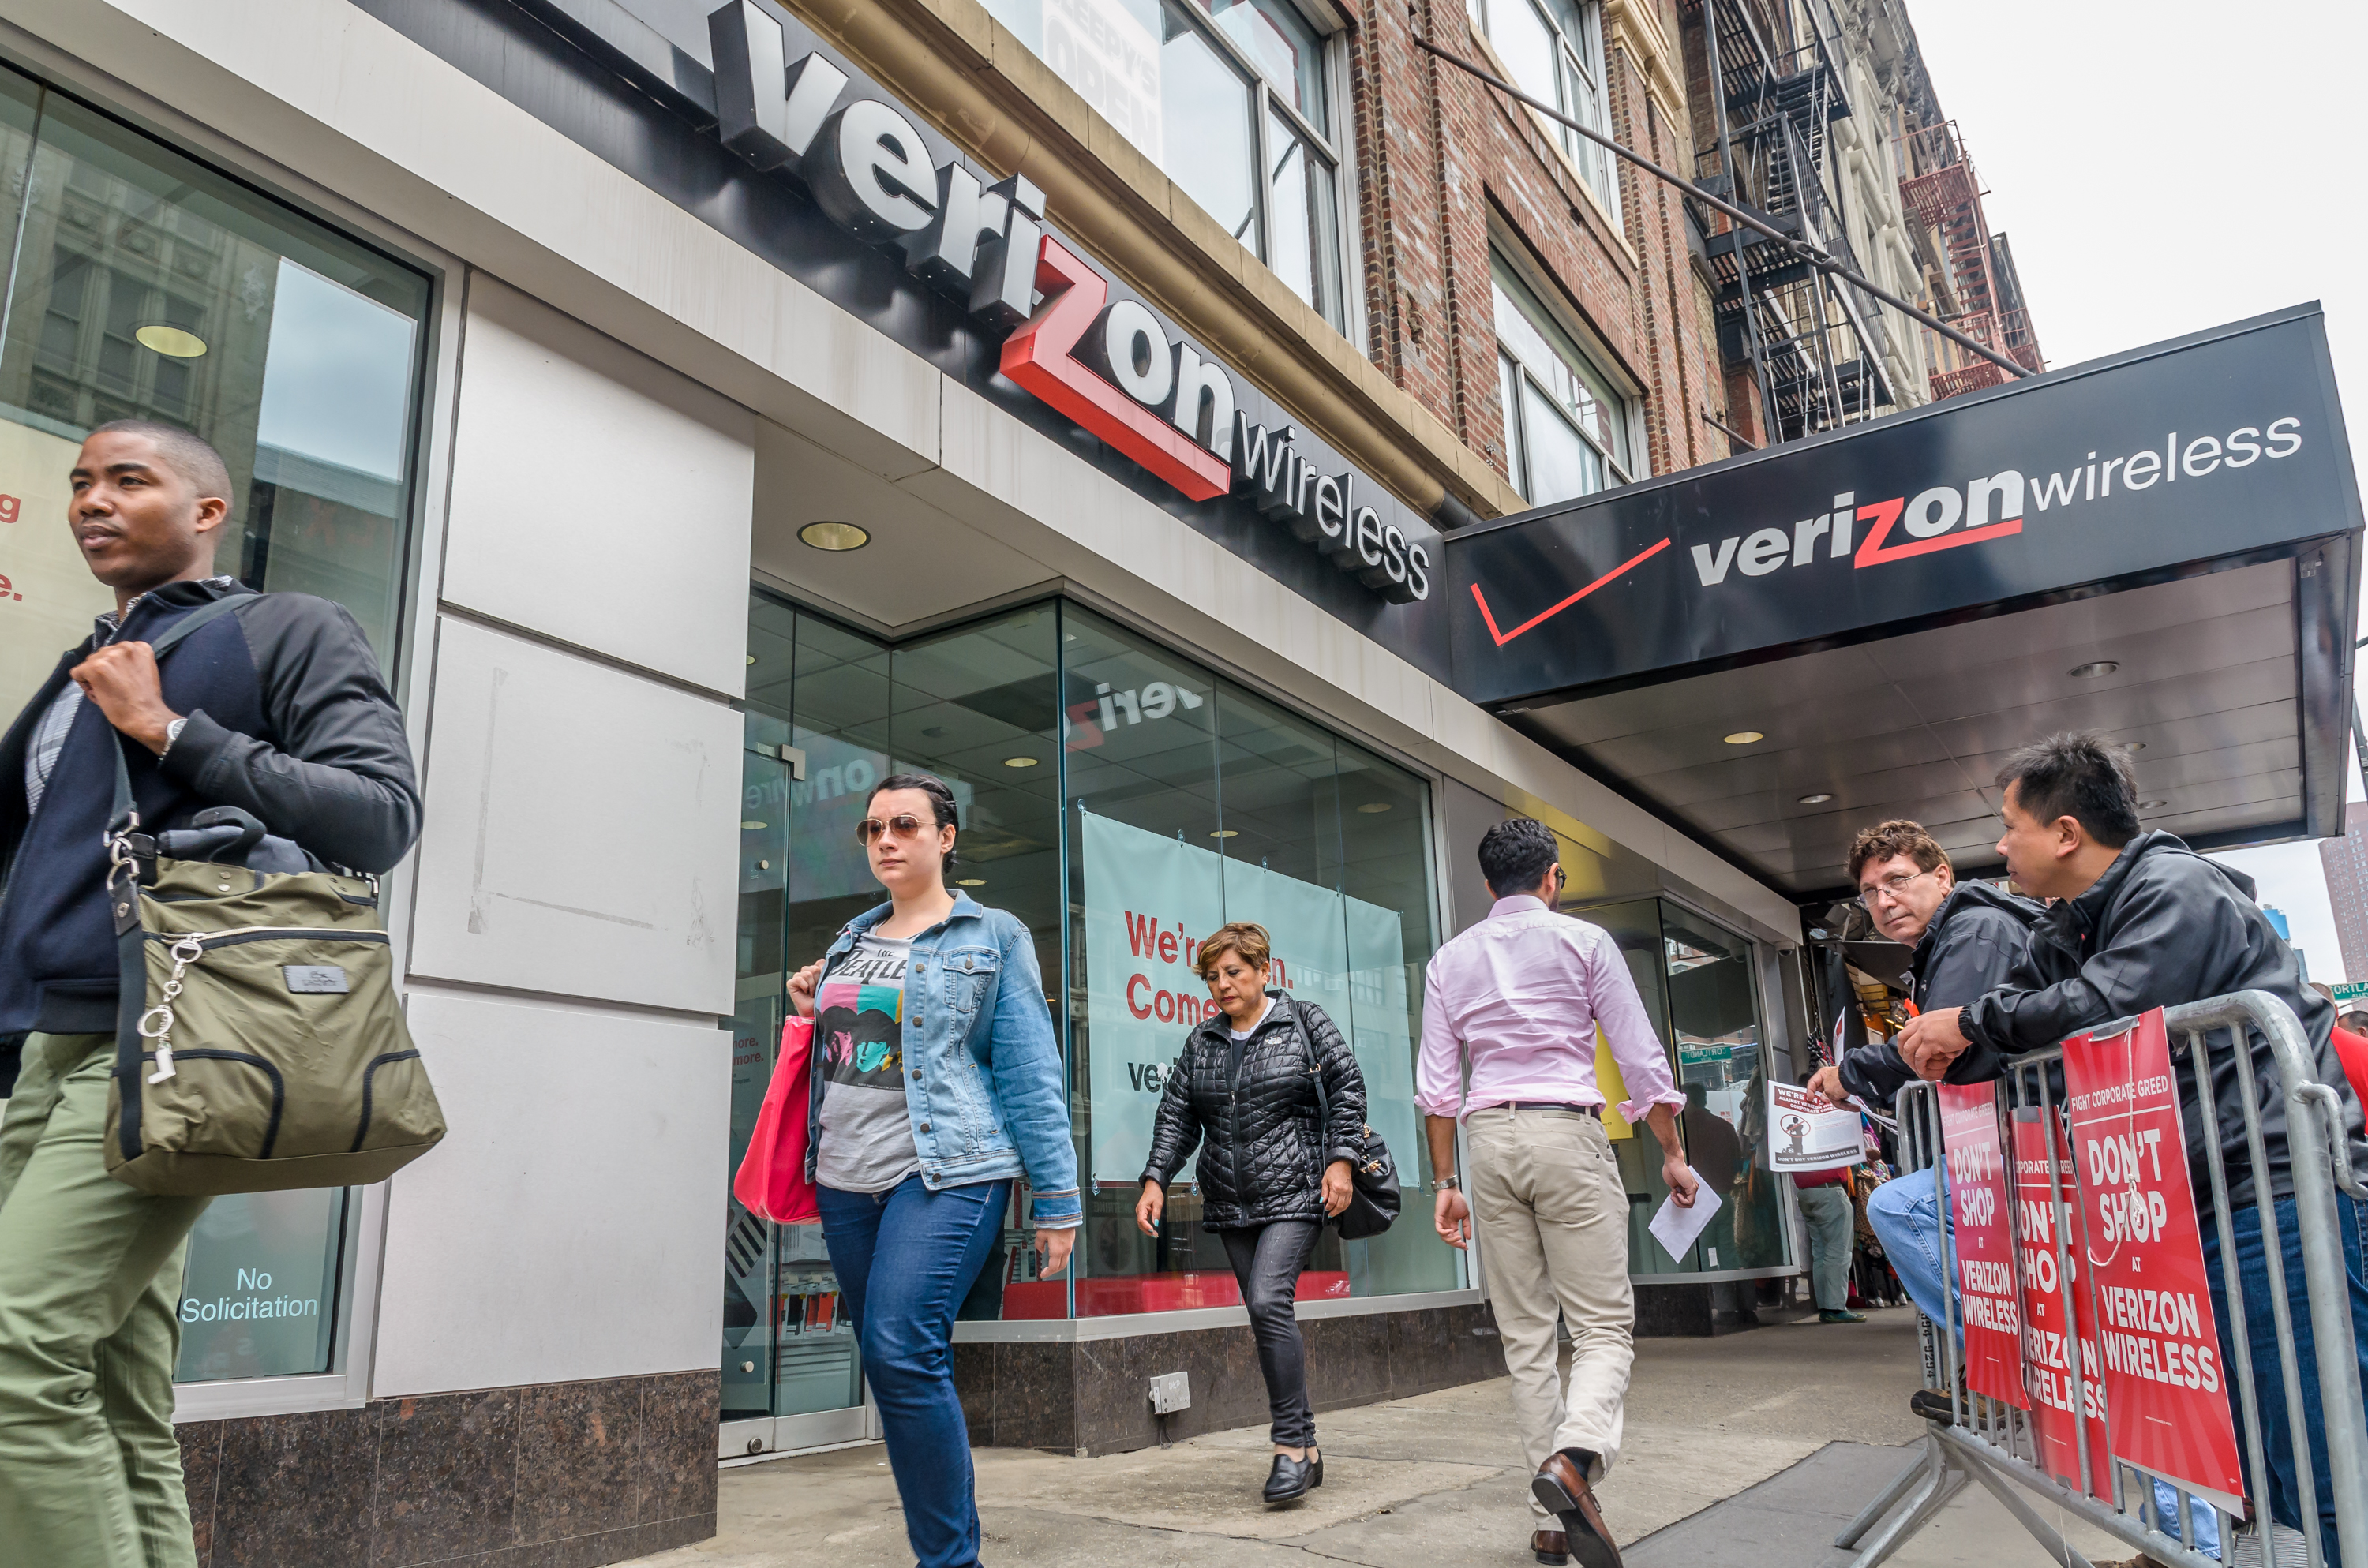 Striking workers on a picket line outside a Verizon retail